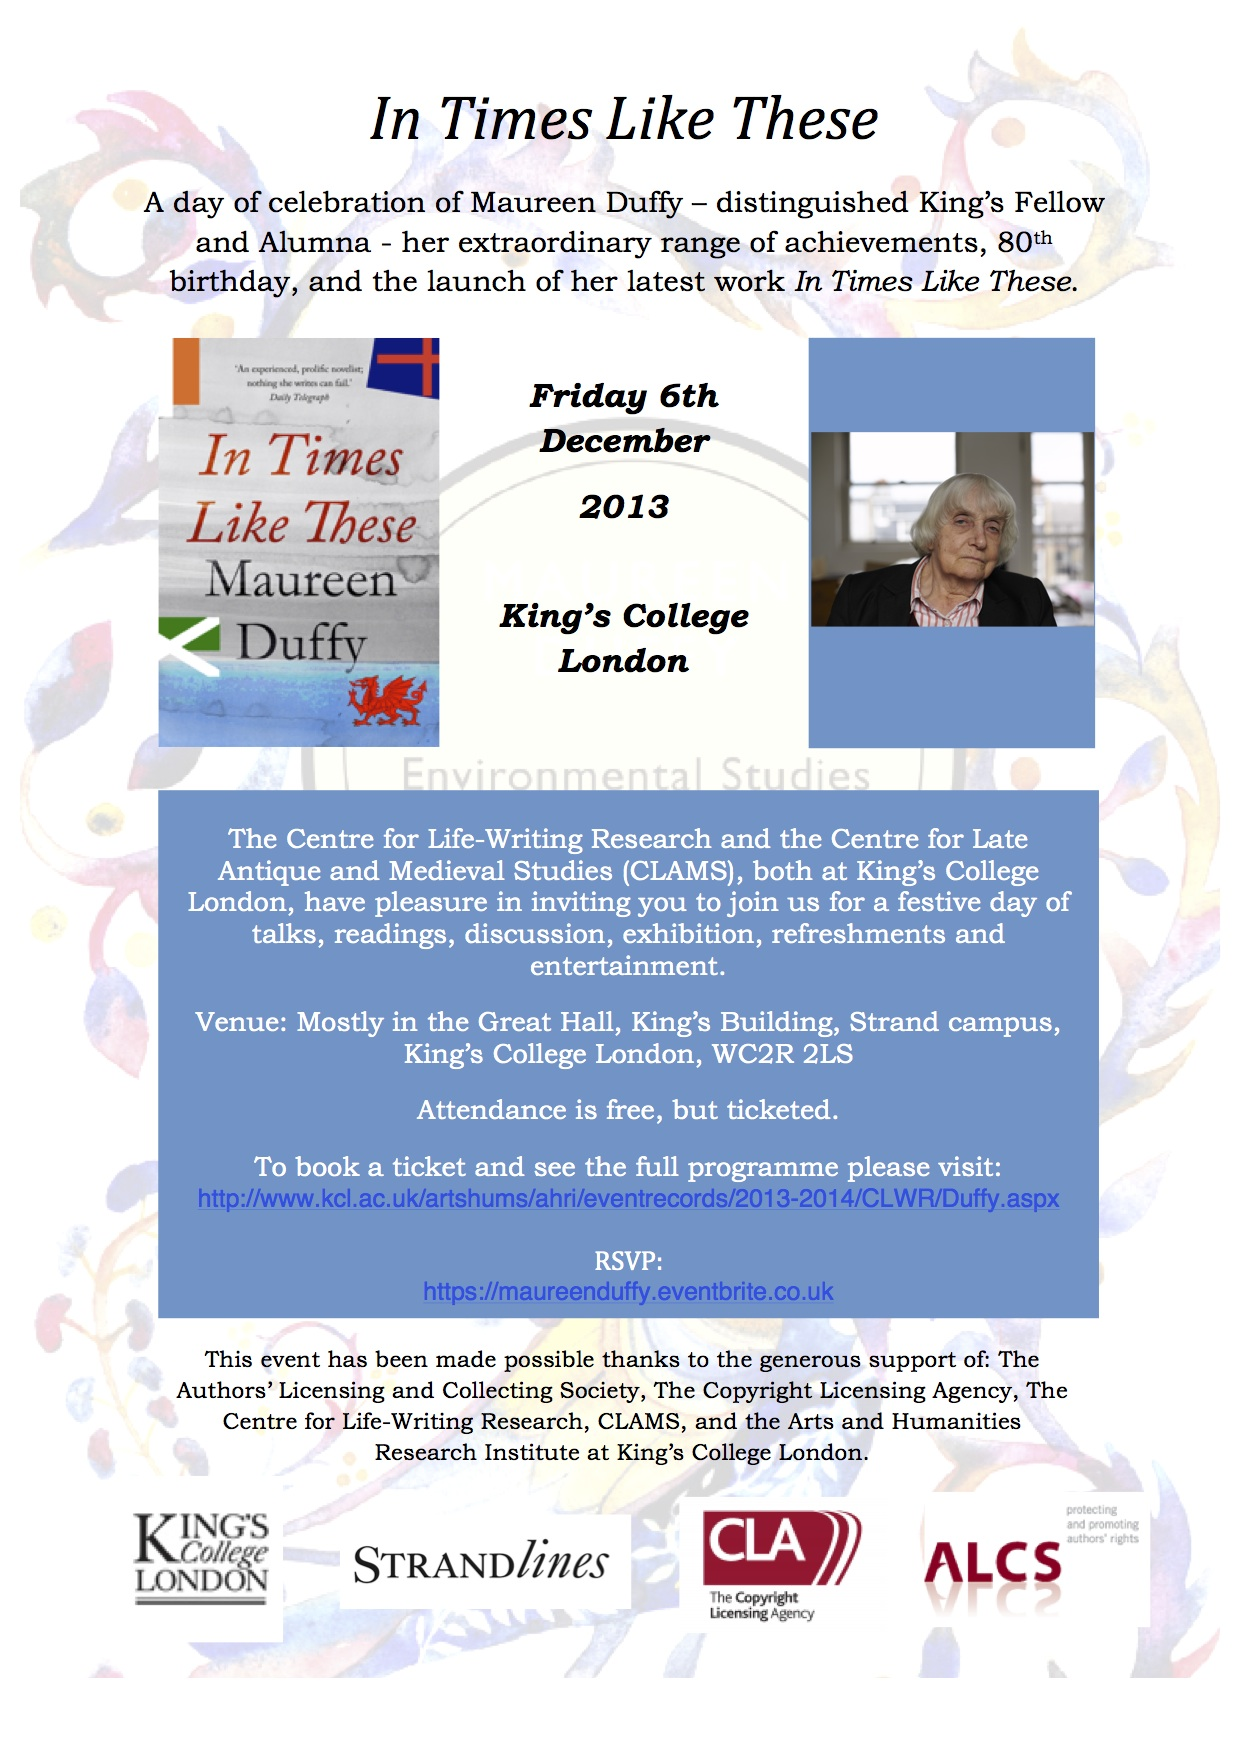 A Day to Celebrate Maureen Duffy at King's College London on 6th December 2013